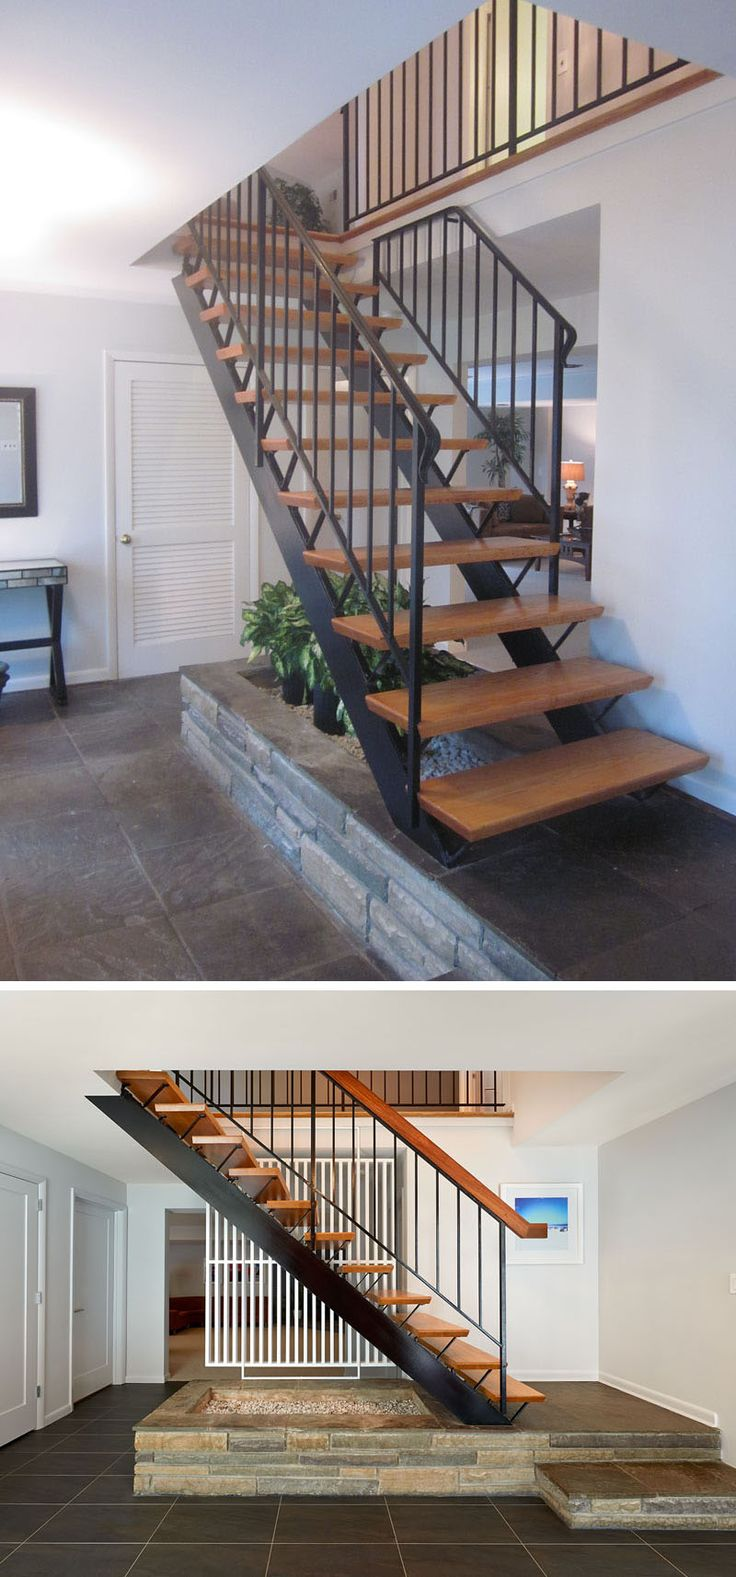 BEFORE & AFTER - This staircase leading to the second floor of the home is an example of mid-century craftsmanship. Dark grey tile was added to accent the staircase's style. The original treads and railing were left, and the handrail was replaced with the wood cap that the client requested for a more authentic finish.